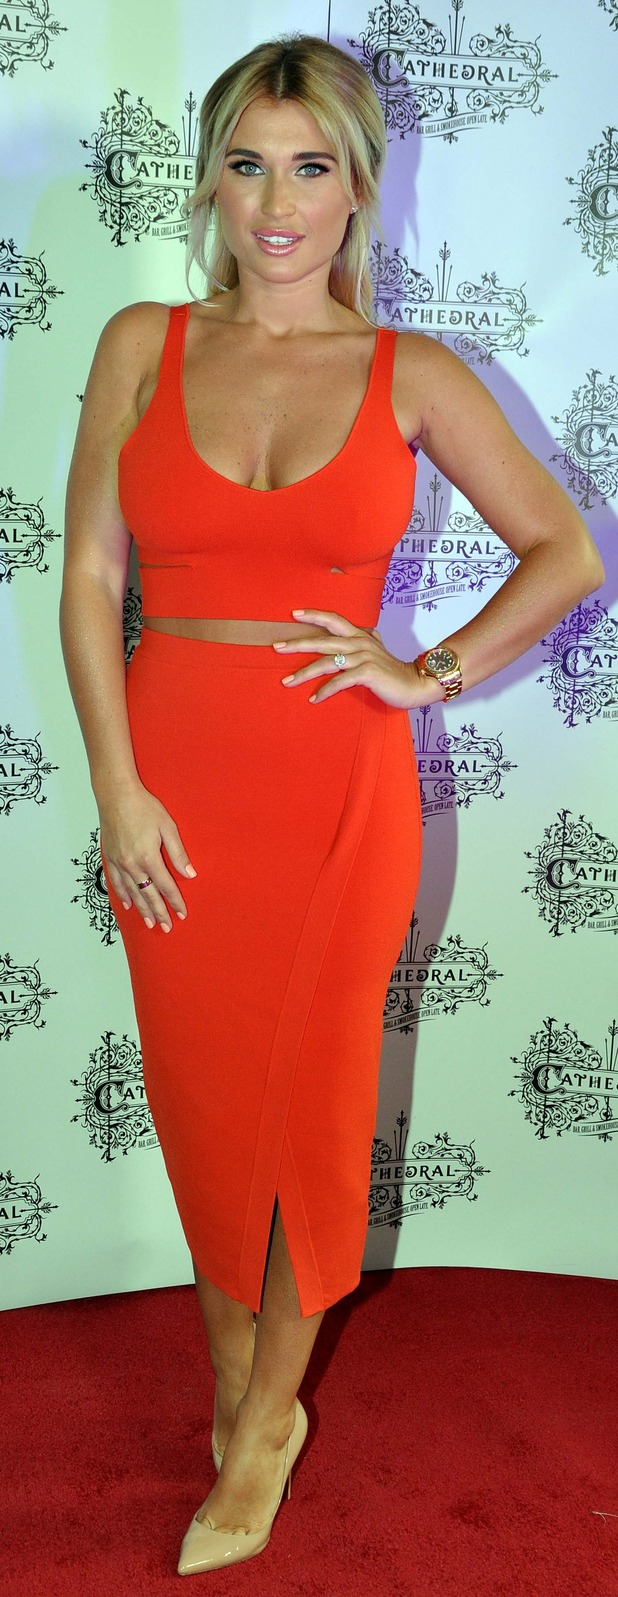 TOWIE's Billie Faiers at Cathedral Garden Bar 13th July 2015